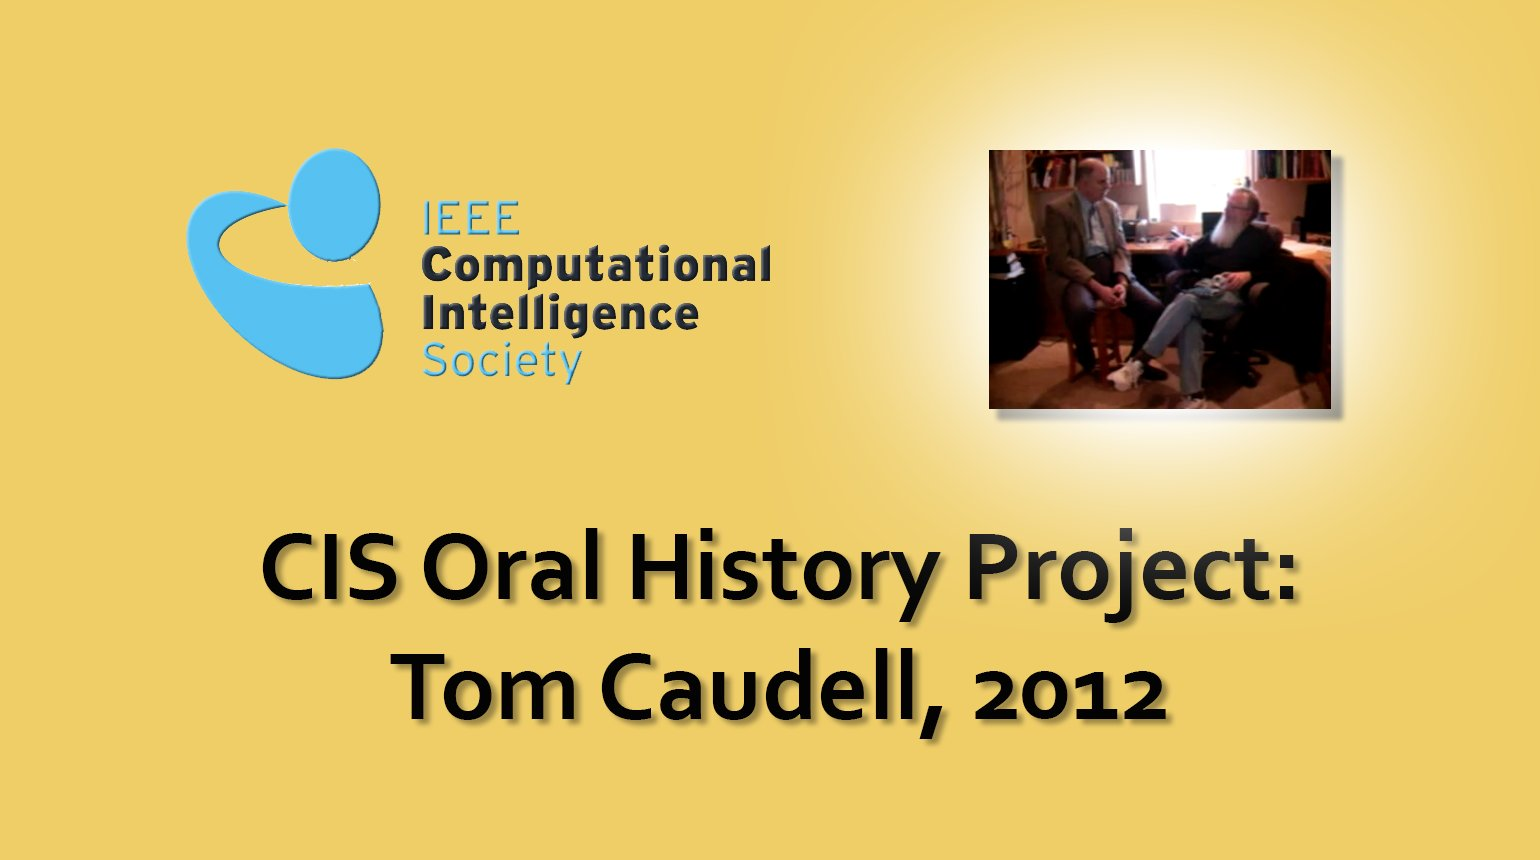 Interview with Tom Caudell, 2012: CIS Oral History Project